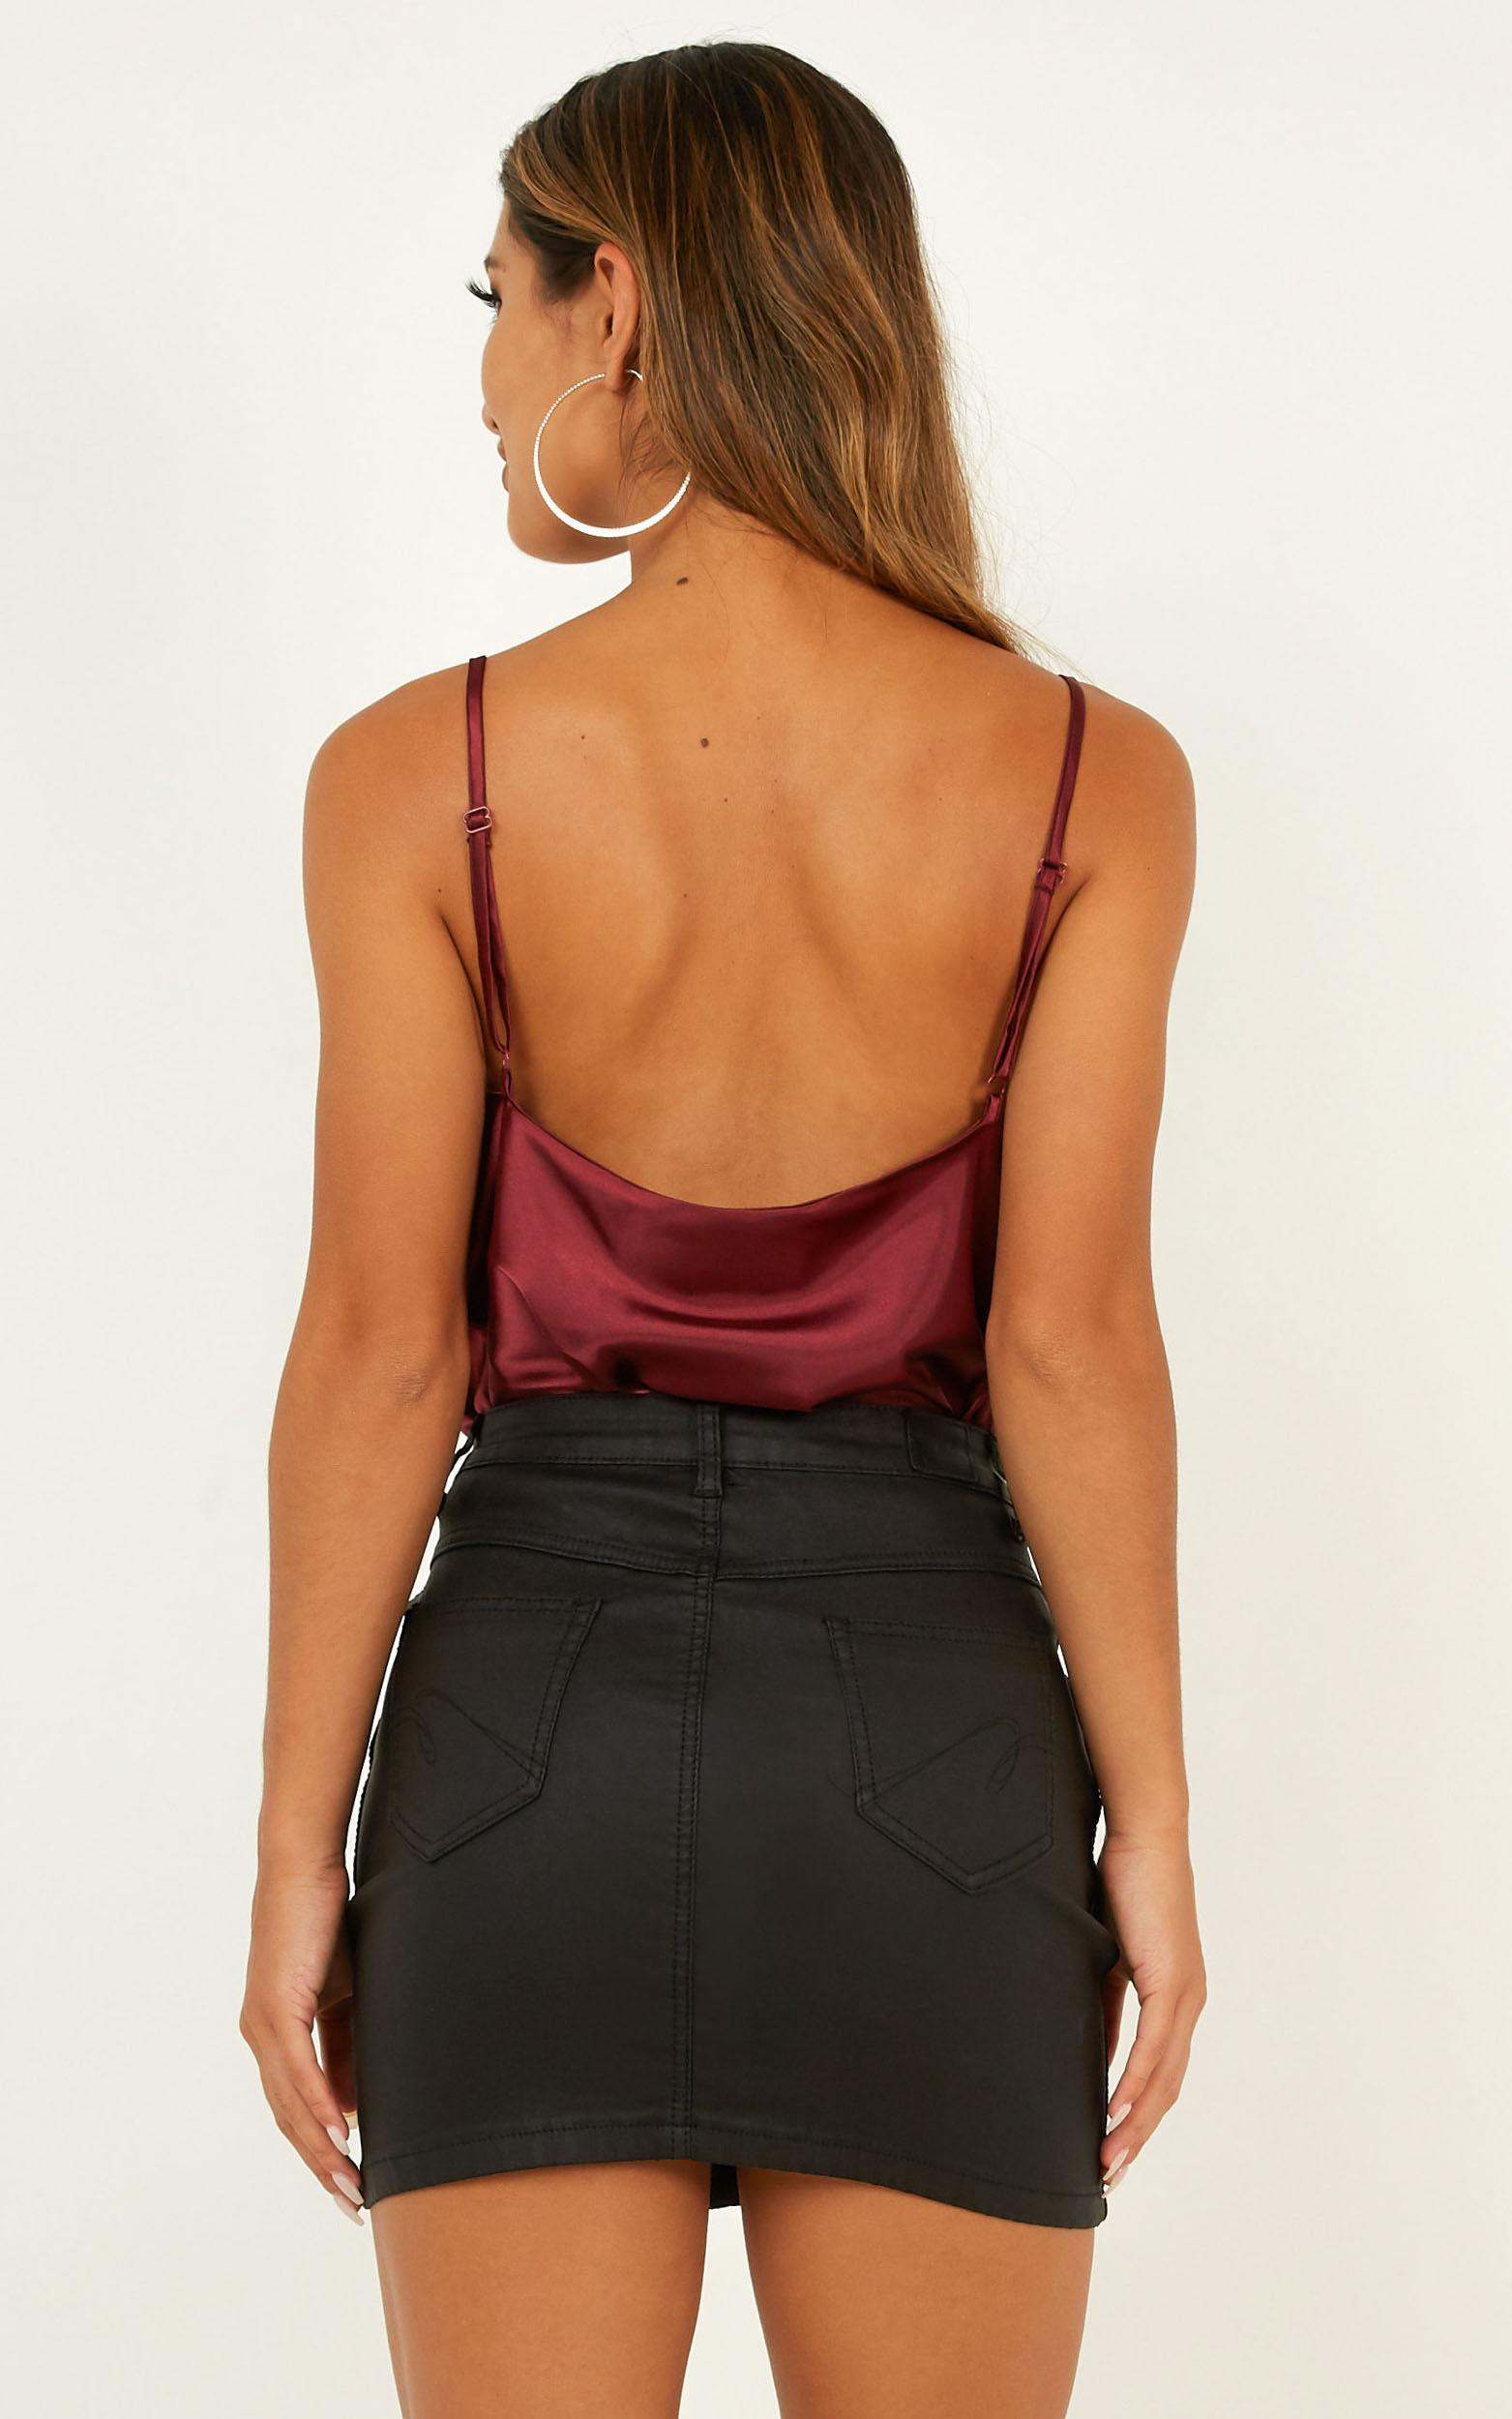 Straight Line top in wine satin - 20 (XXXXL), Wine, hi-res image number null